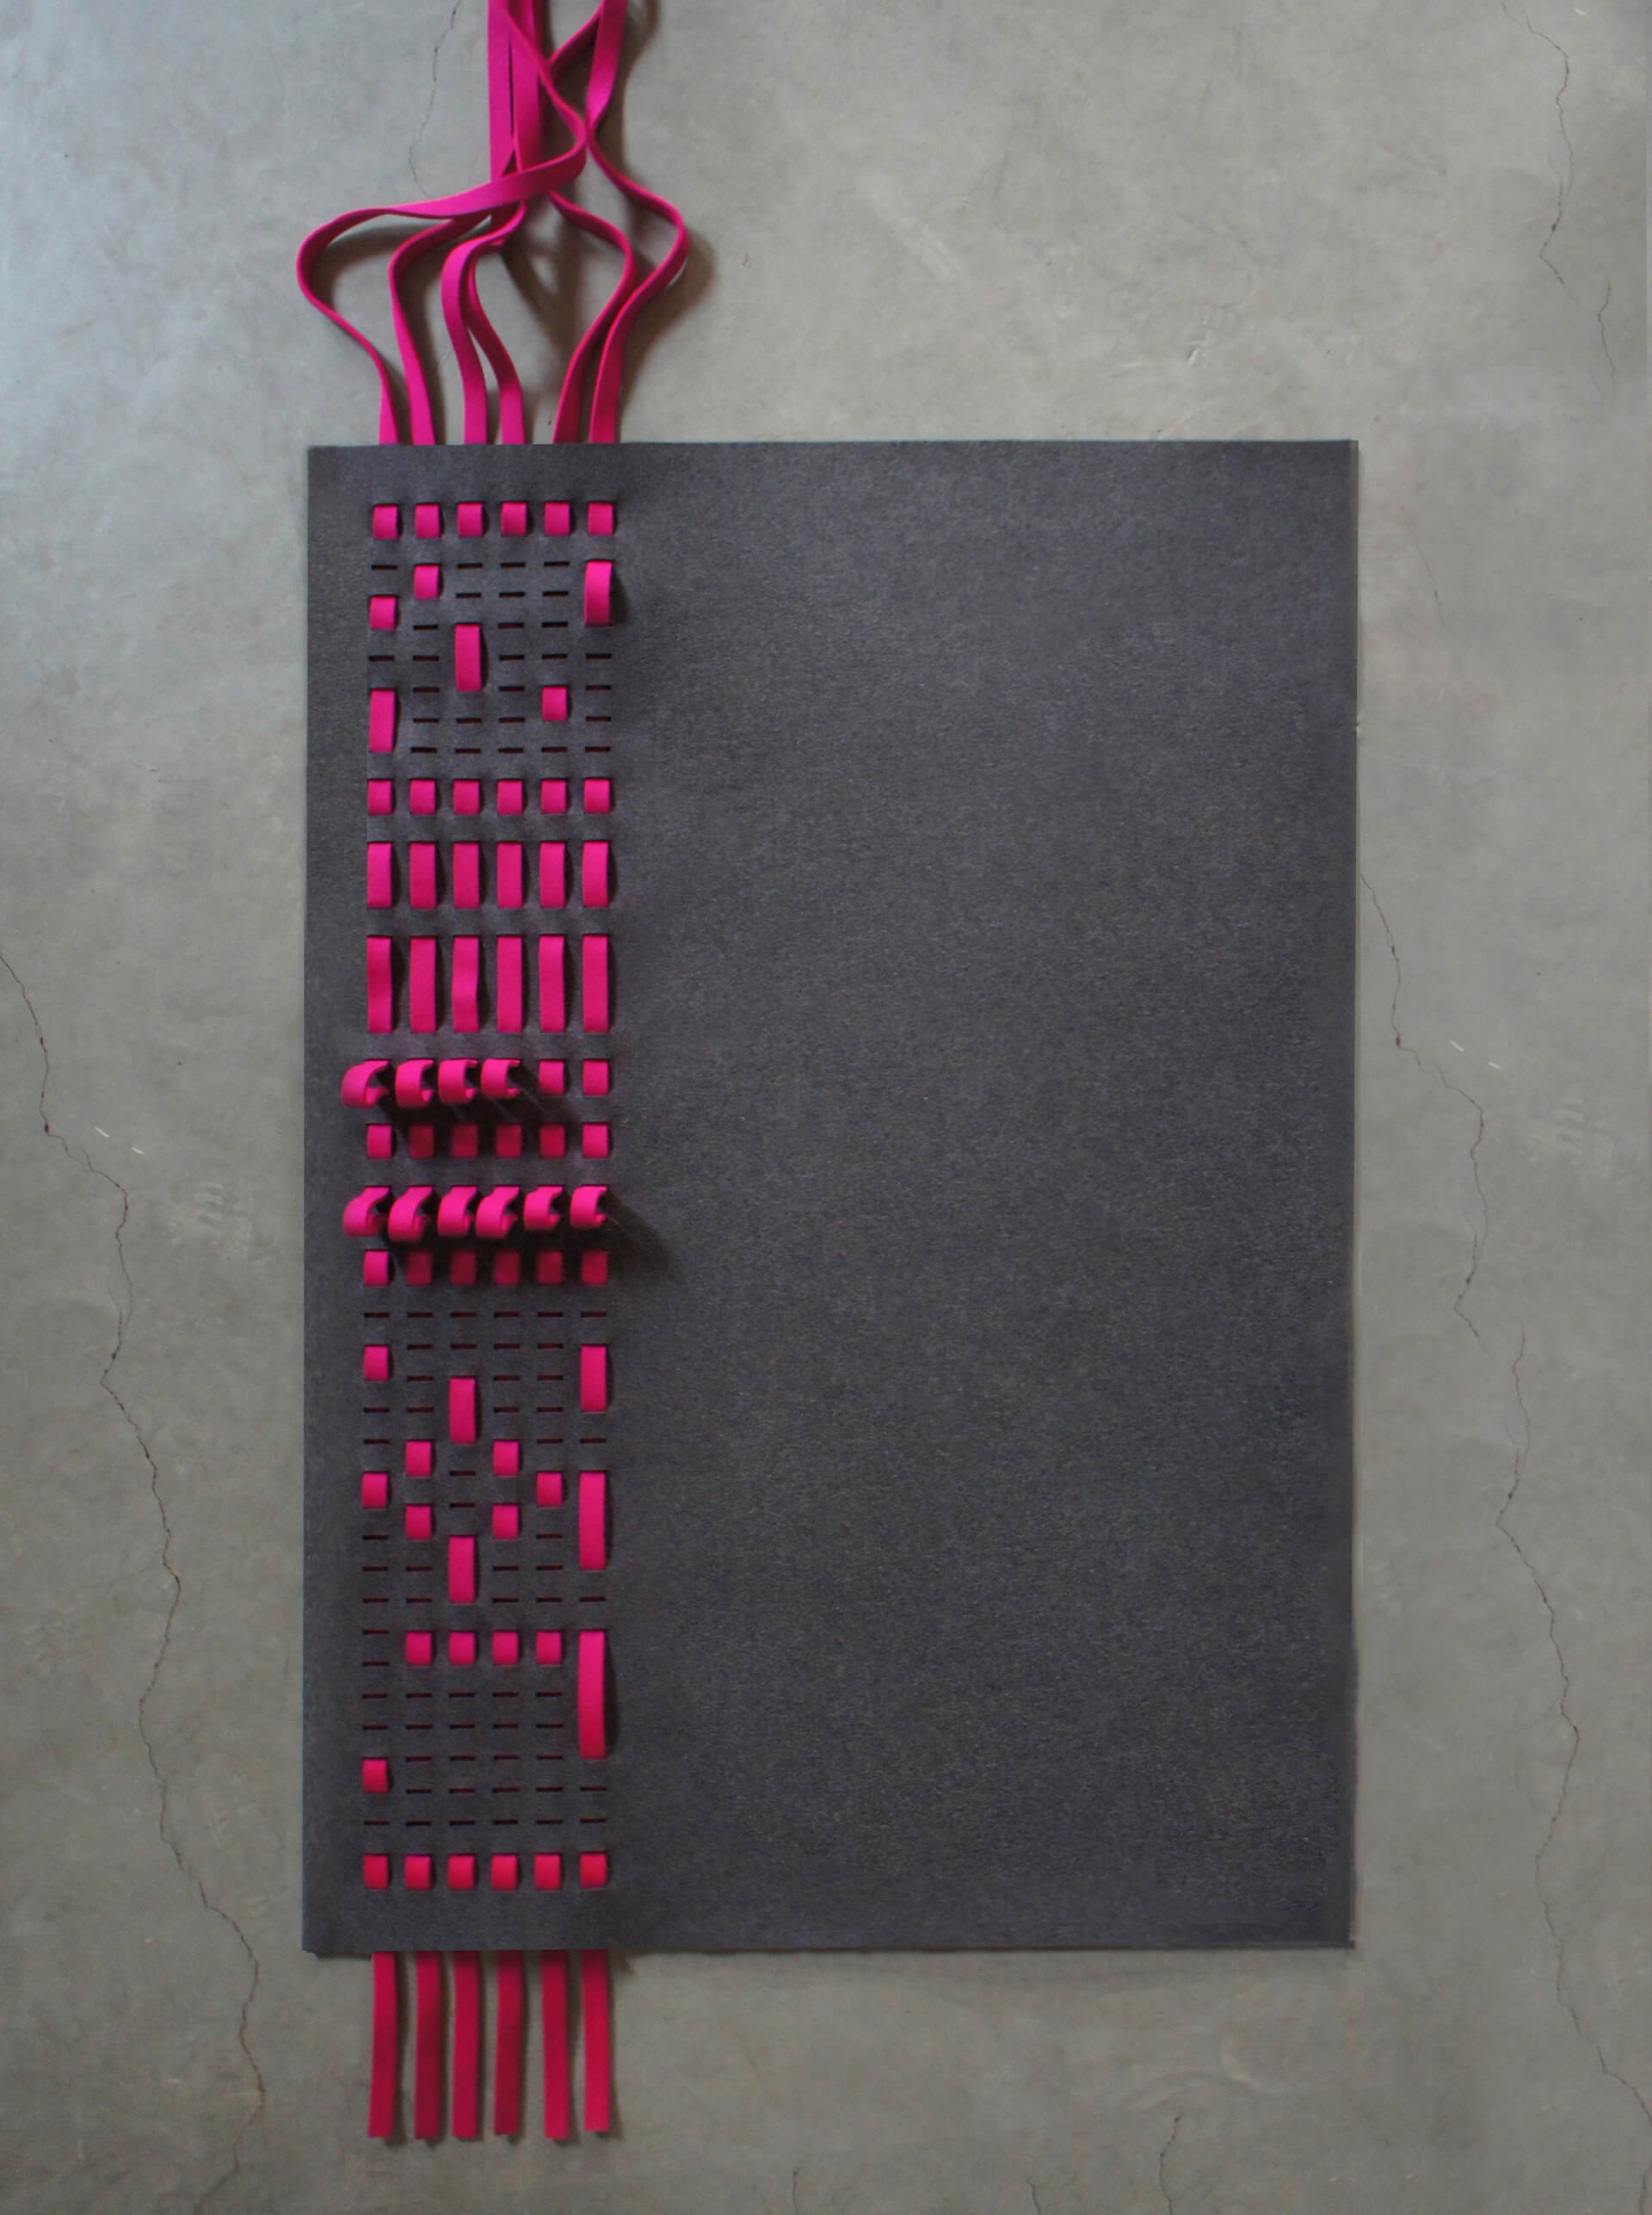 Loom Rug | Made in Turkey: Curated by Arhan Kayar | STIRworld